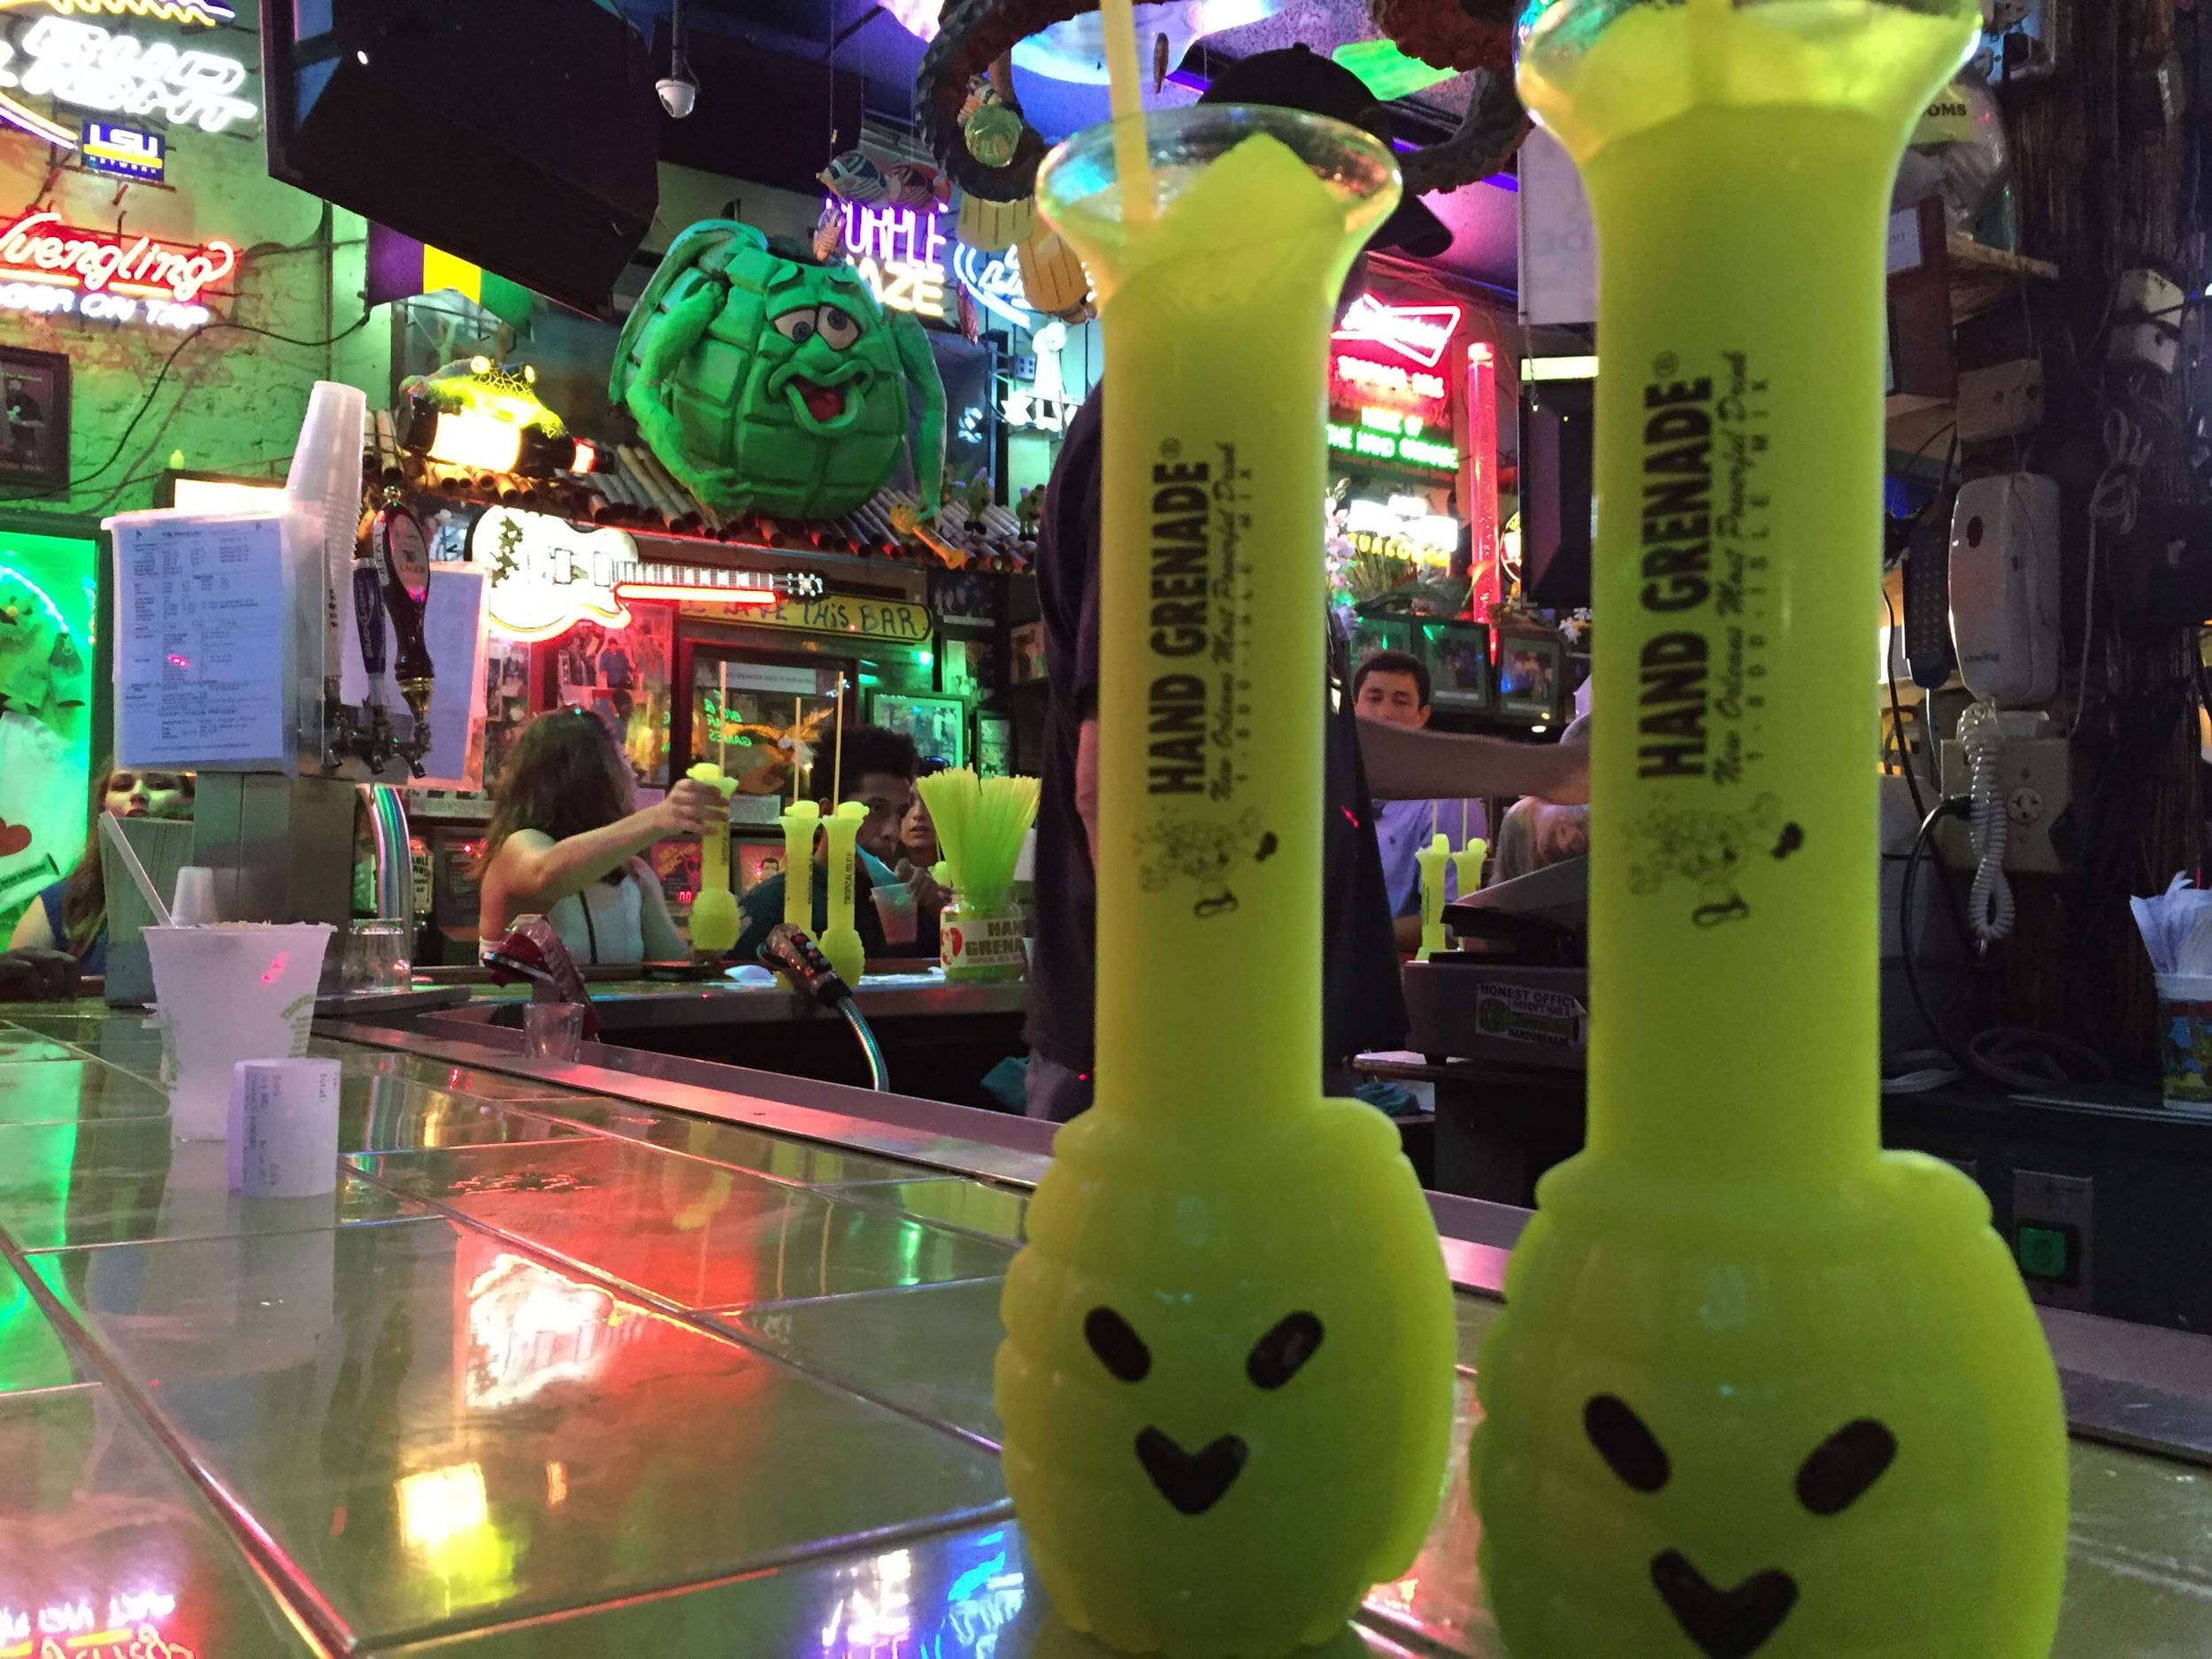 Hand Grenades at Tropical Isle on Bourbon Street